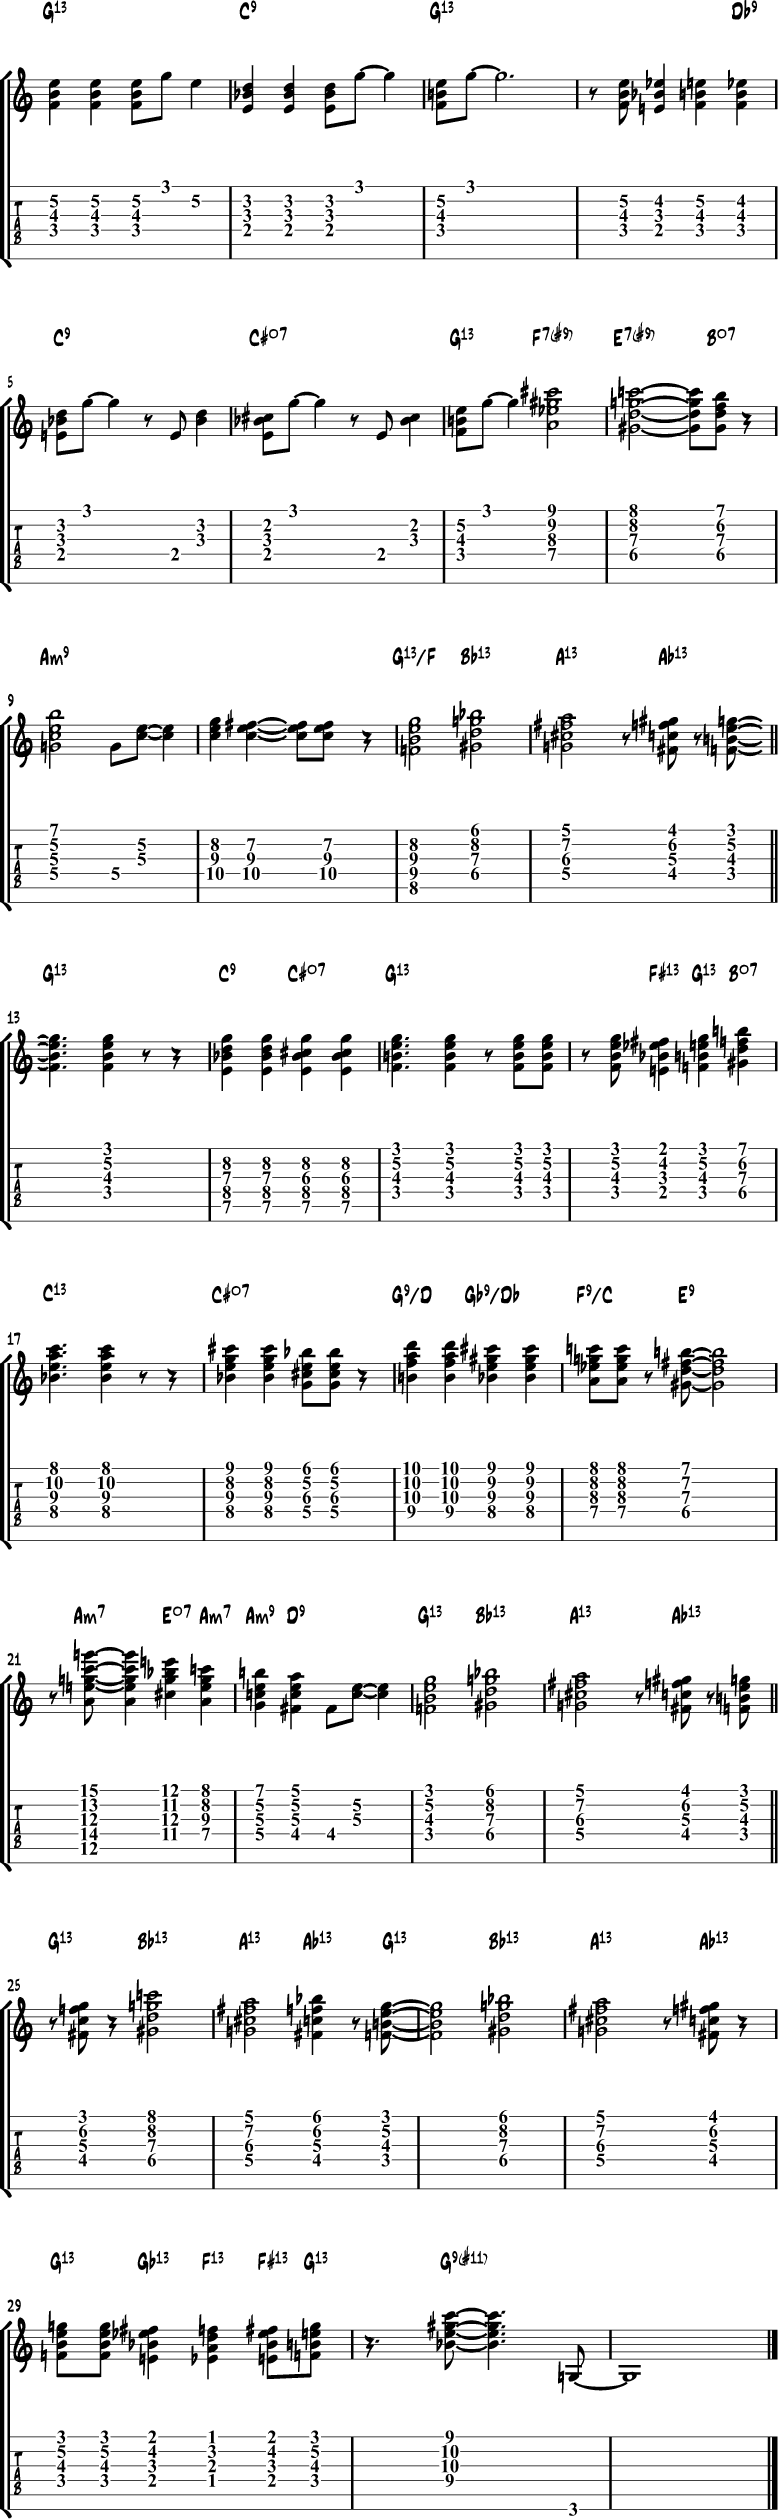 Jazz Blues Chord Progressions Shapes Comping Examples